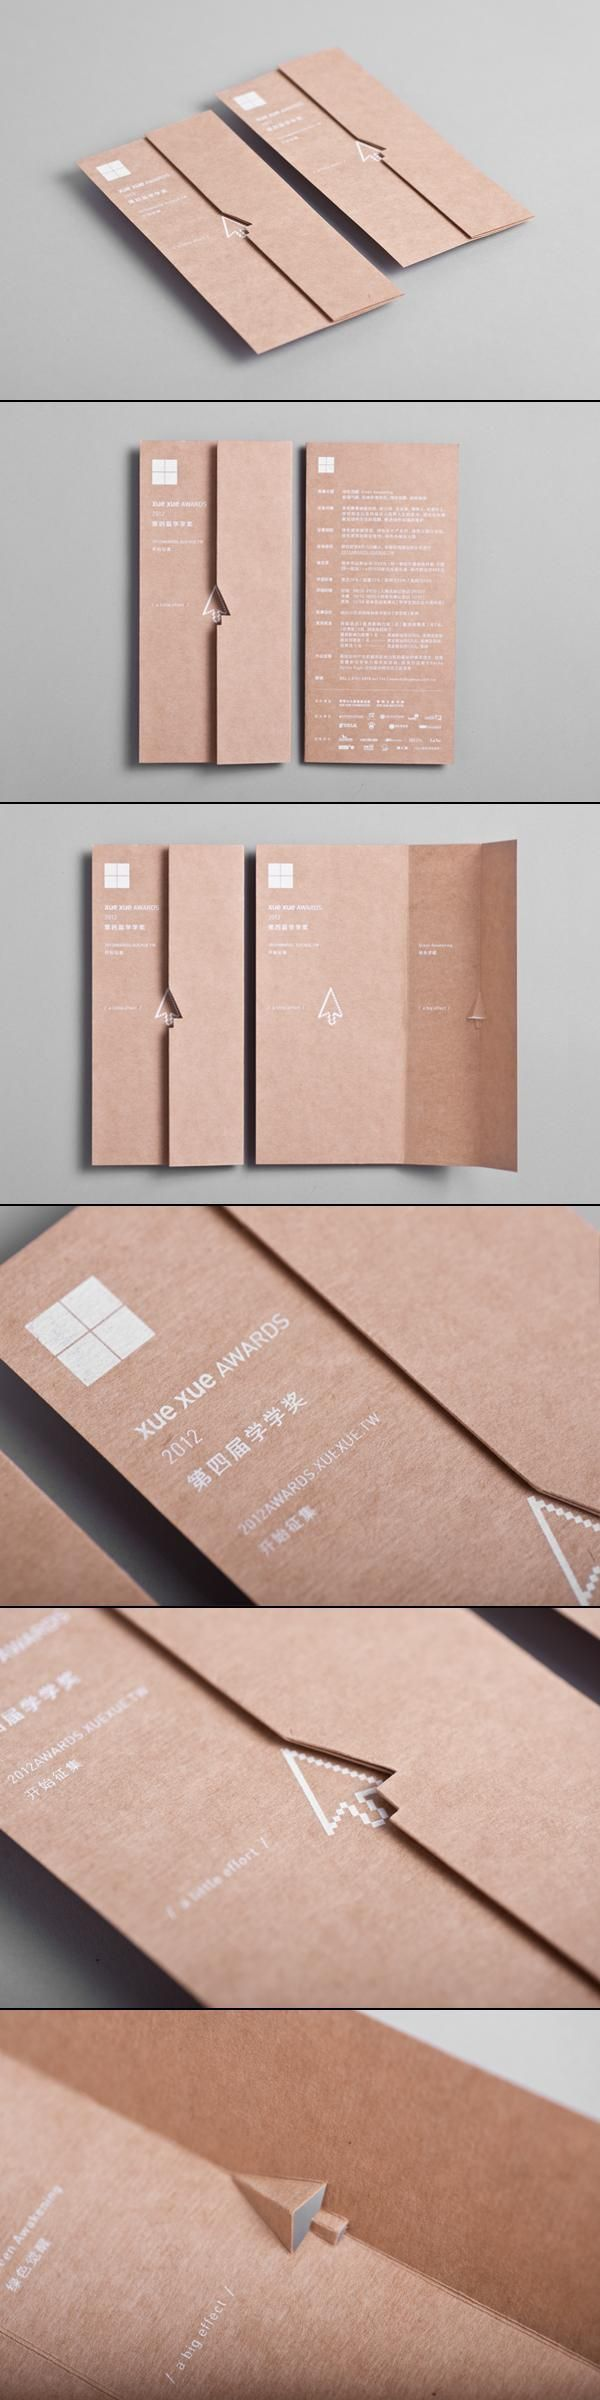 Xue Xue Awards 2012 - Great business card / repinned by http://stephaniegraphisme.wix.com/portfolio